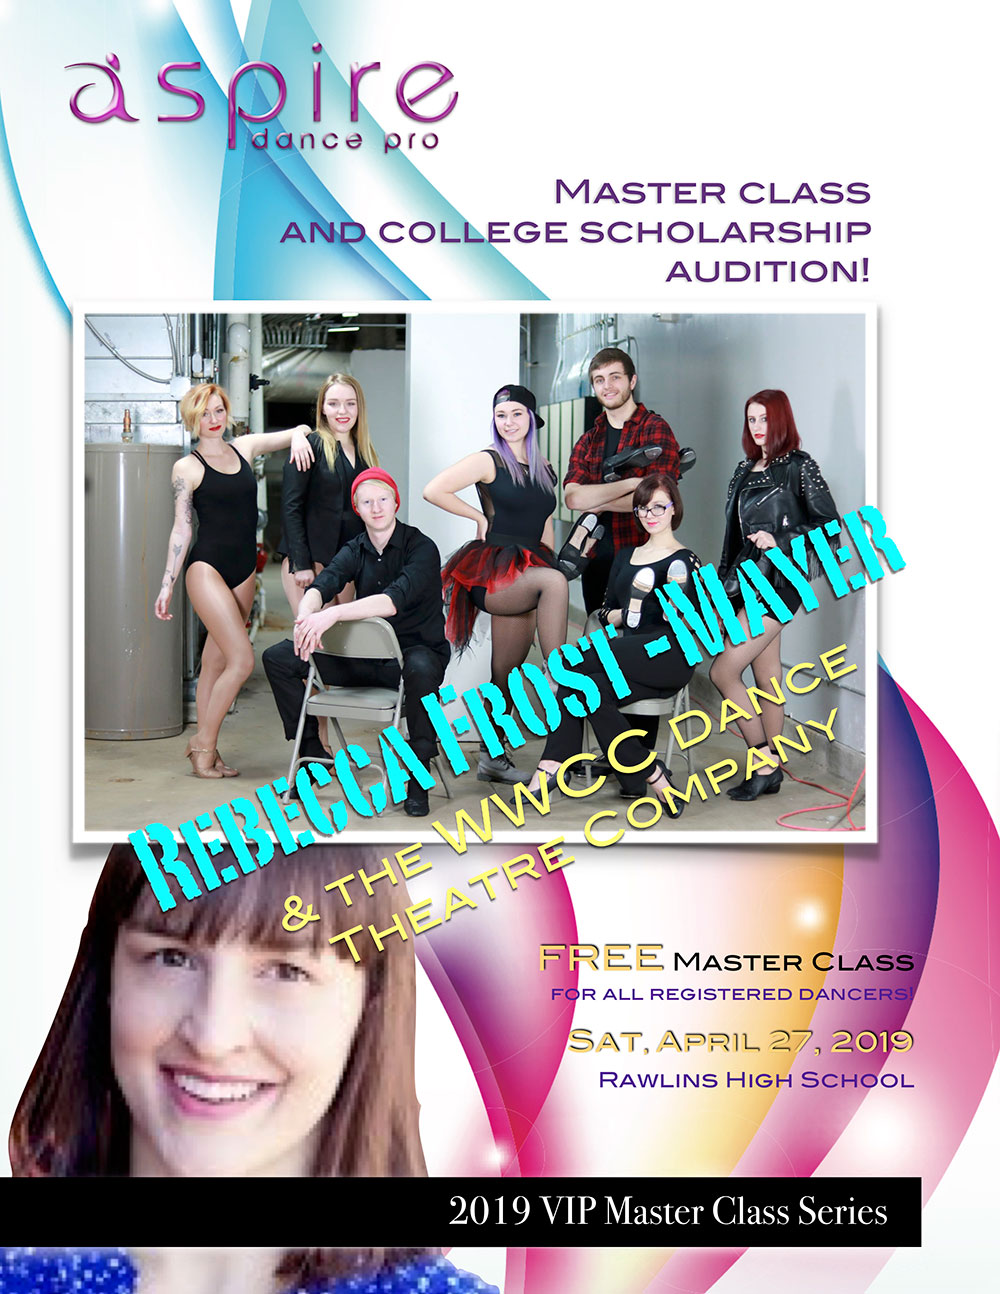 Marc Cameron - Aspire Dance Pro Competitions Masterclass Instructor